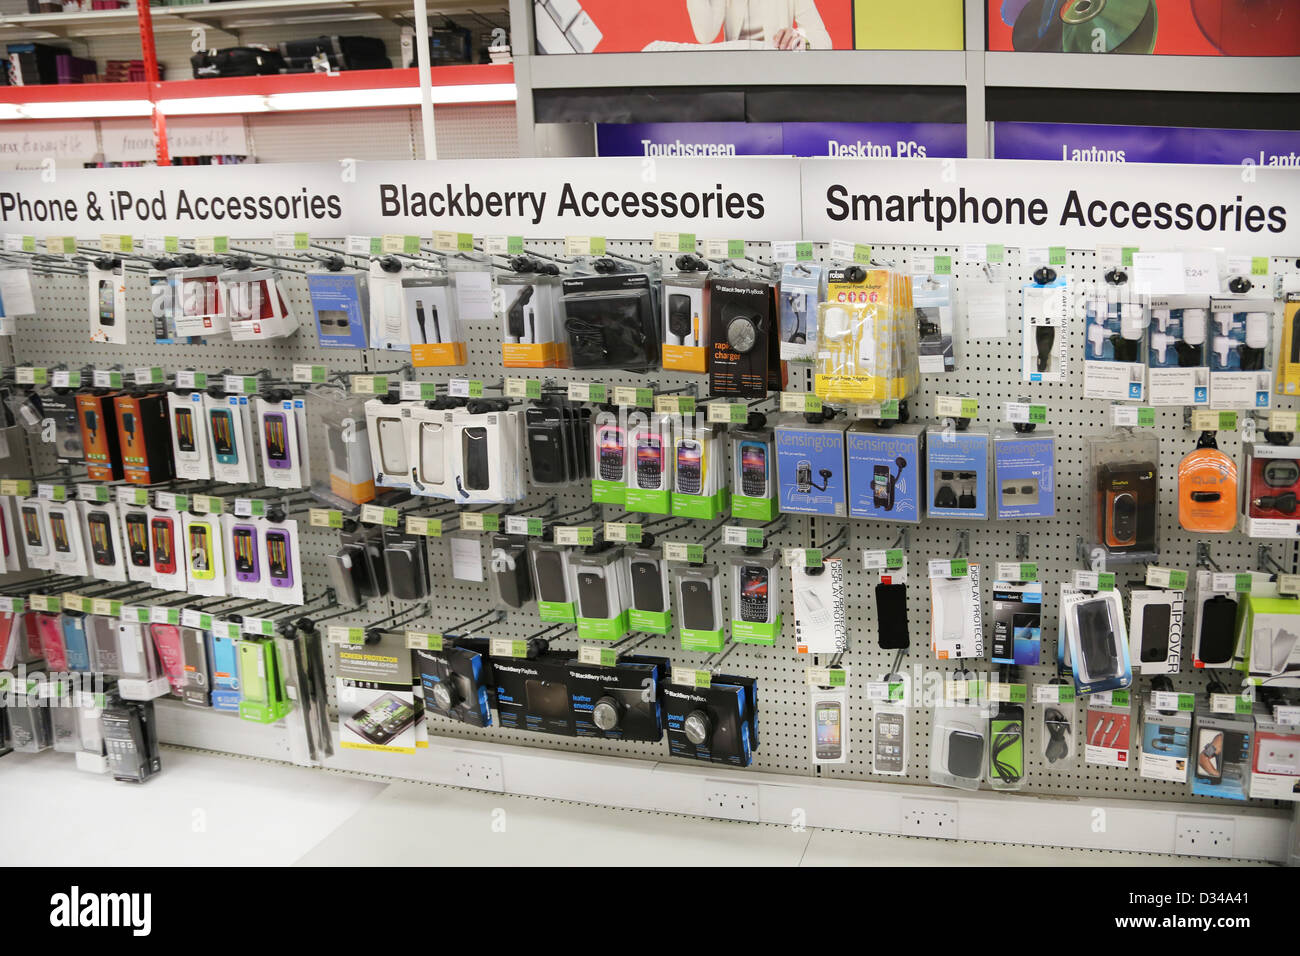 iPhone, iPod, Blackberry And Smartphone Accessories On Sale In Shop